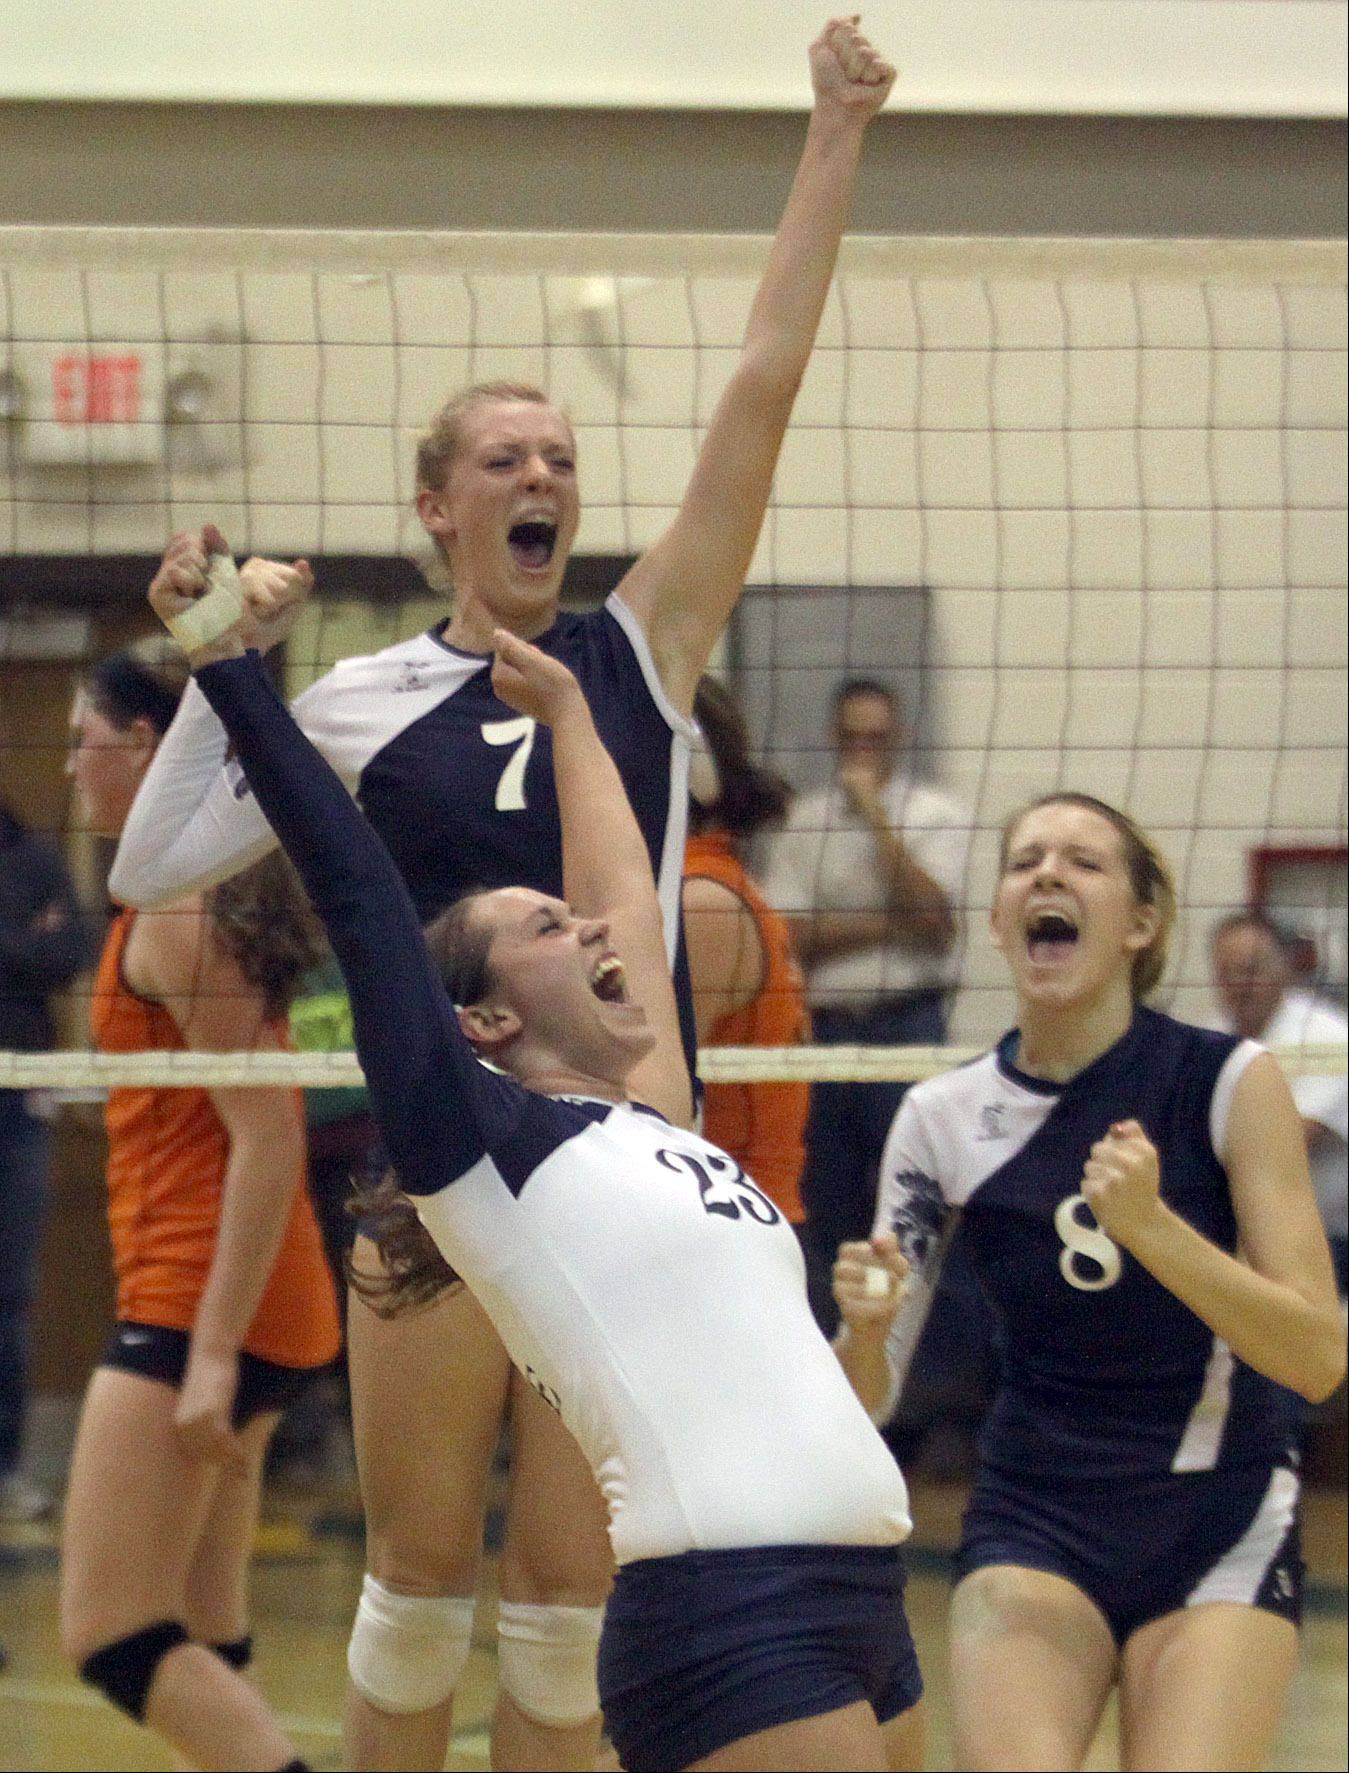 Cary-Grove players Morgan Lee, upper left, Micah Duzey, lower left, and Abby Schebel celebrate a regional game victory over Crystal Lake Central at Crystal Lake South High School on Monday night.